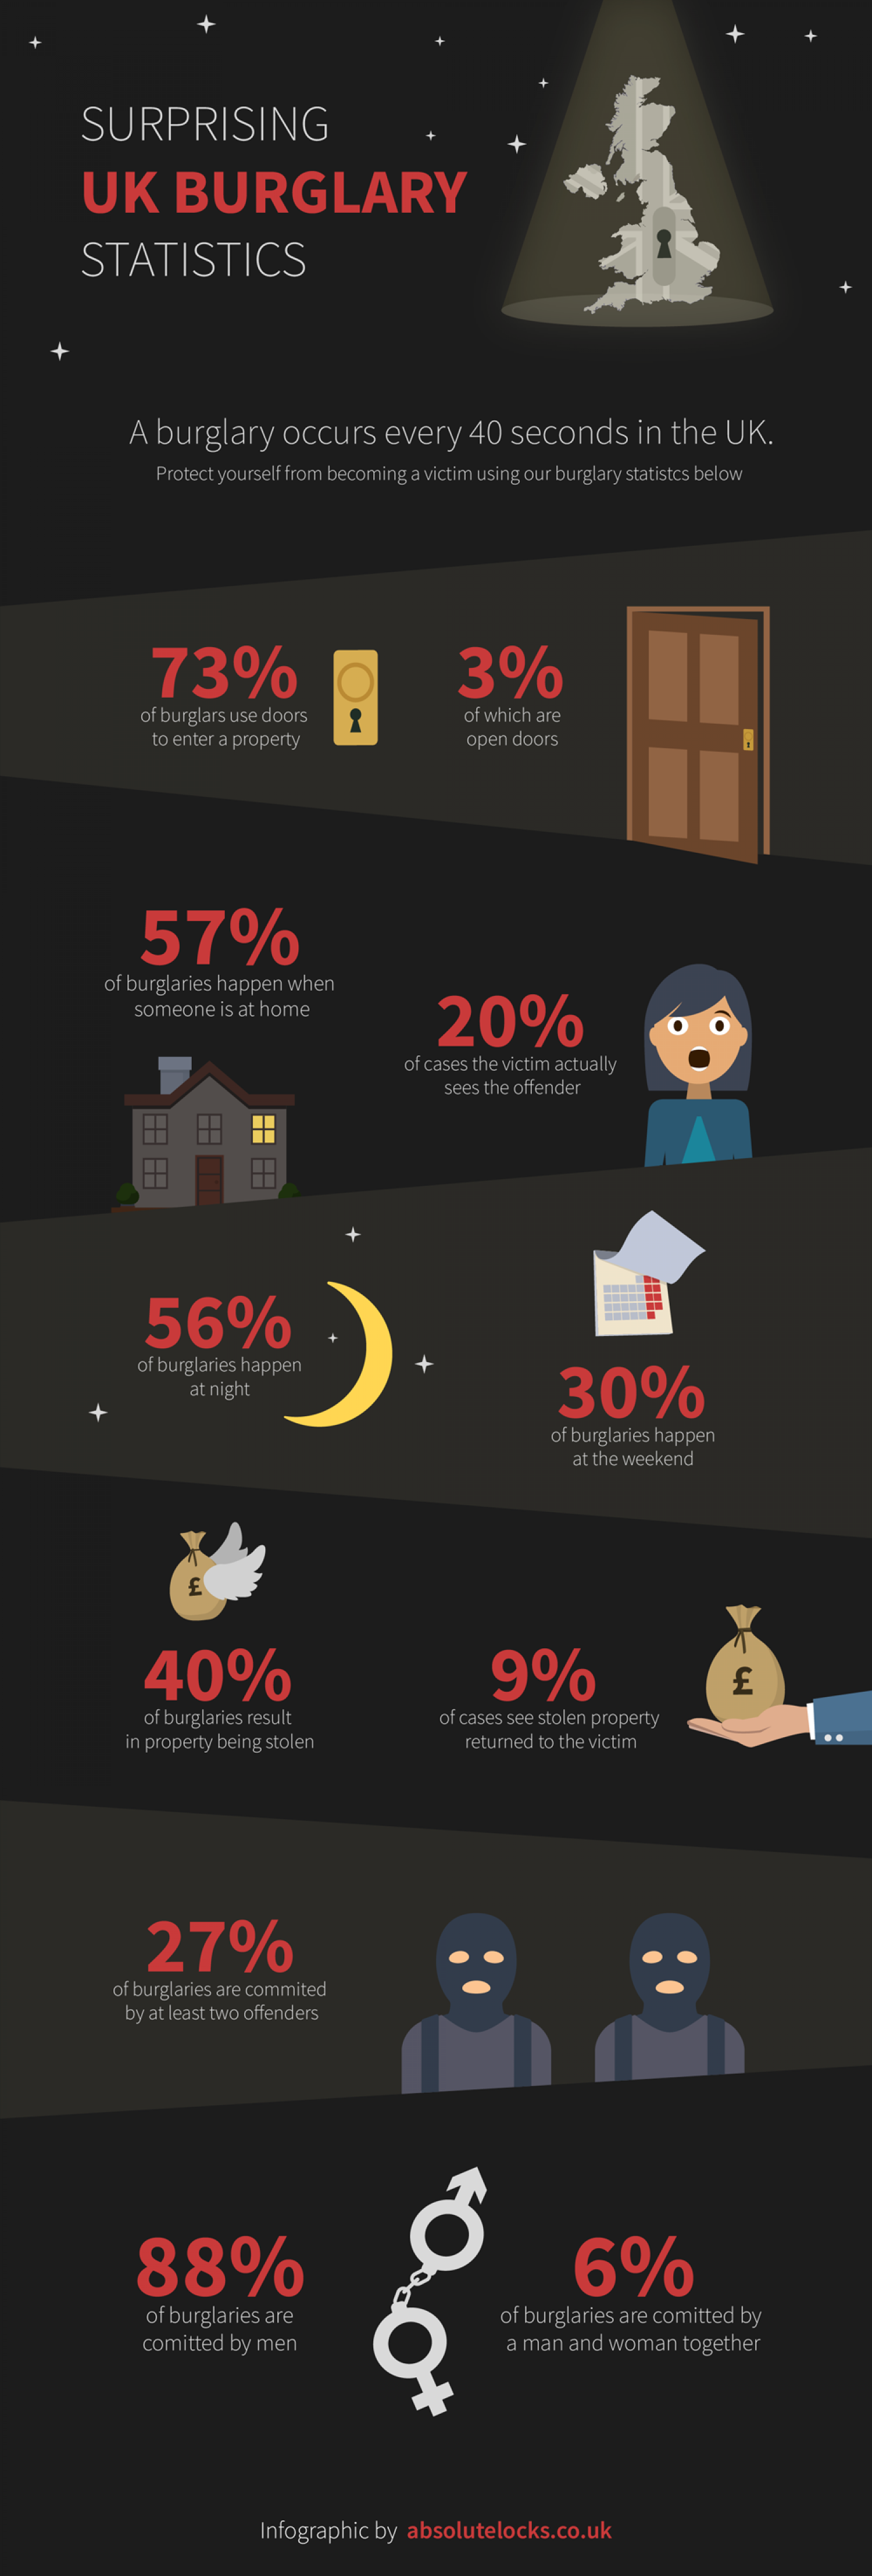 Surprising UK Burglary Statistics Infographic